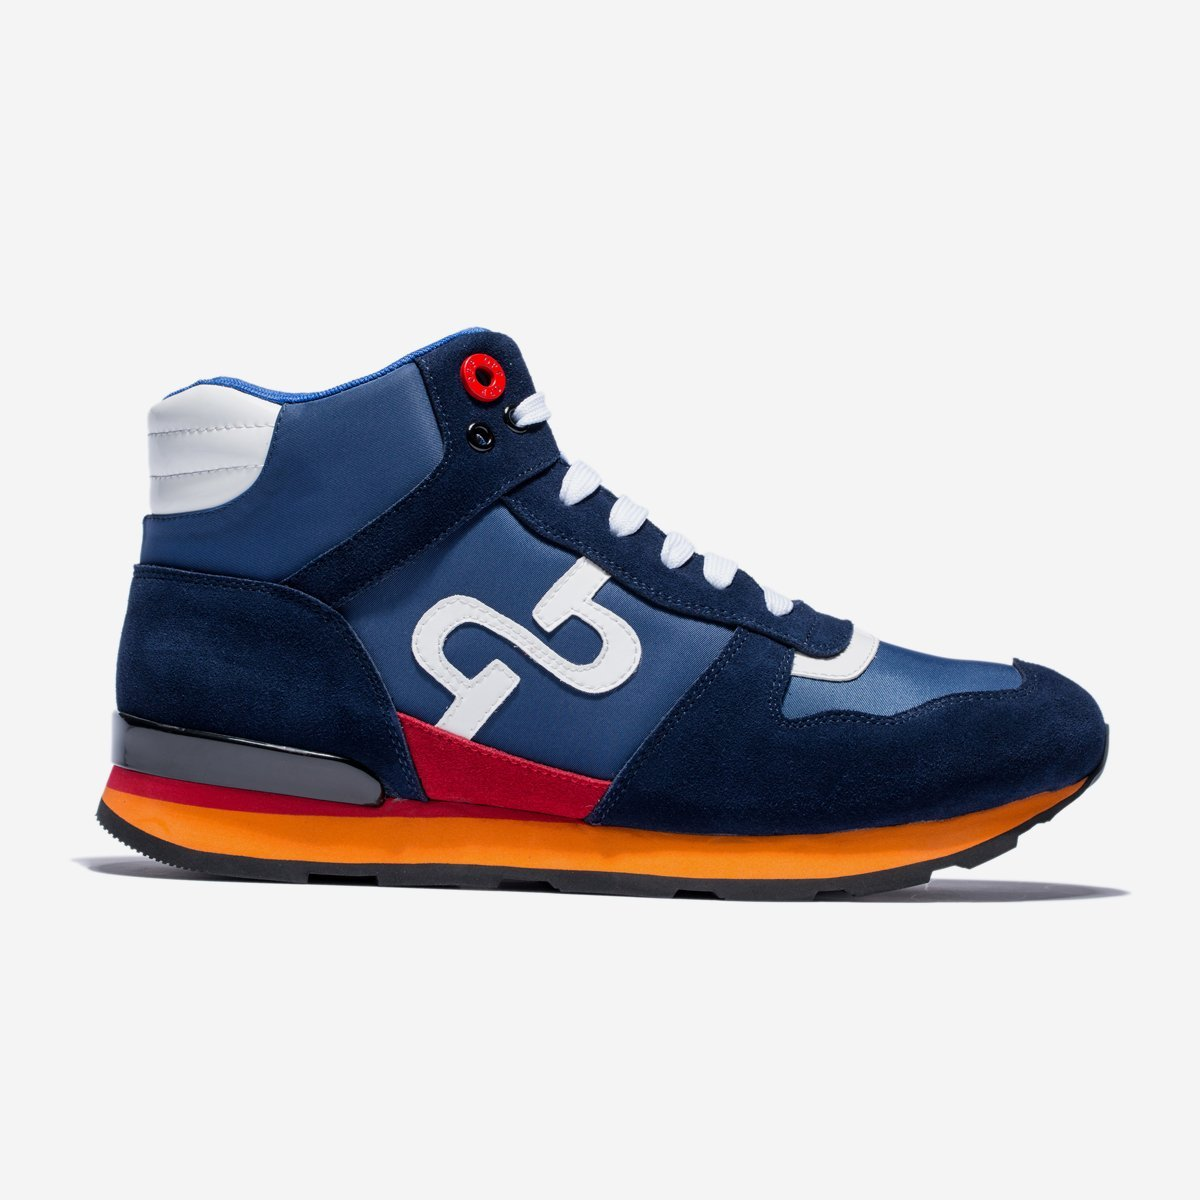 High Top Lace-Up Suede Sneakers Blue